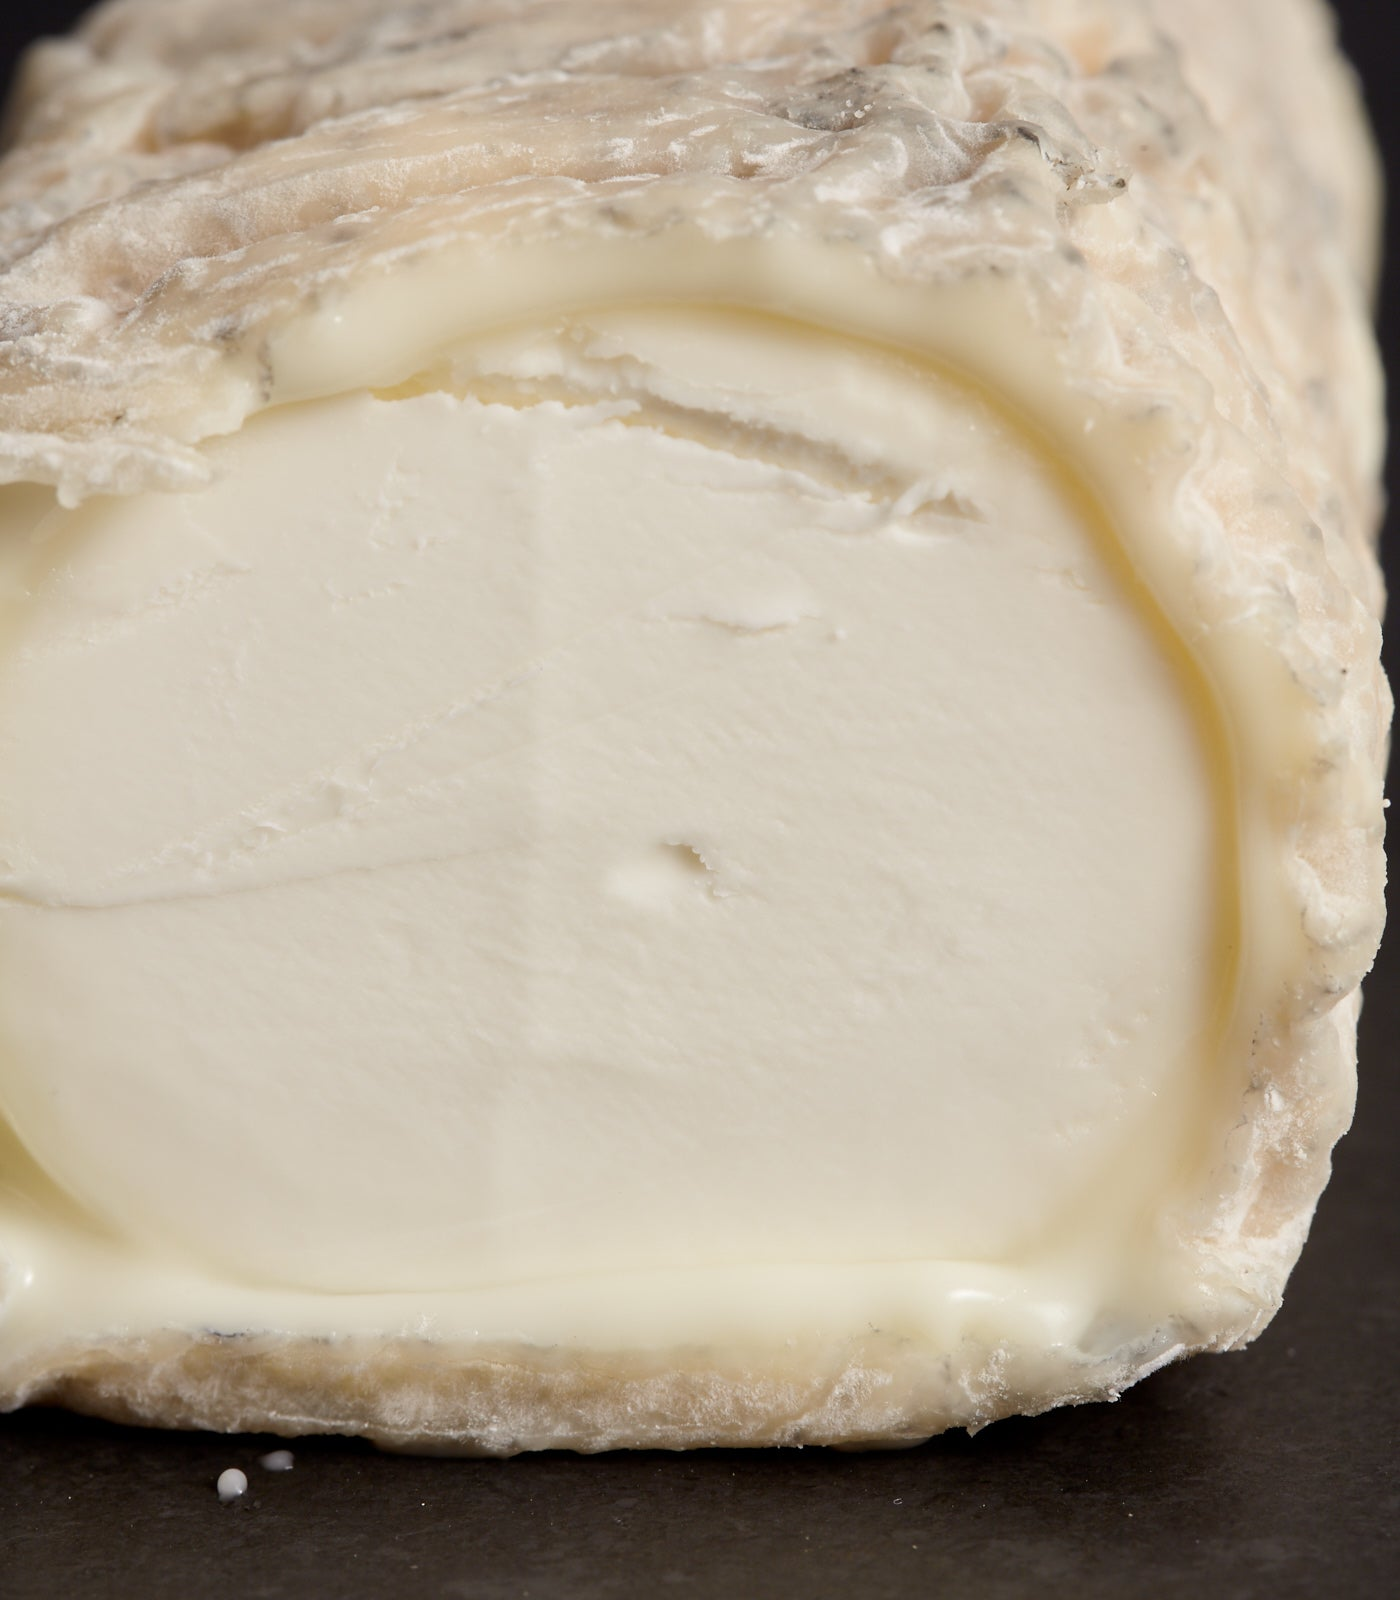 Close up of the cross-section of Innes Log goat's cheese, showing the dense white paste and unctuous breakdown at the pinky-grey wrinkly rind